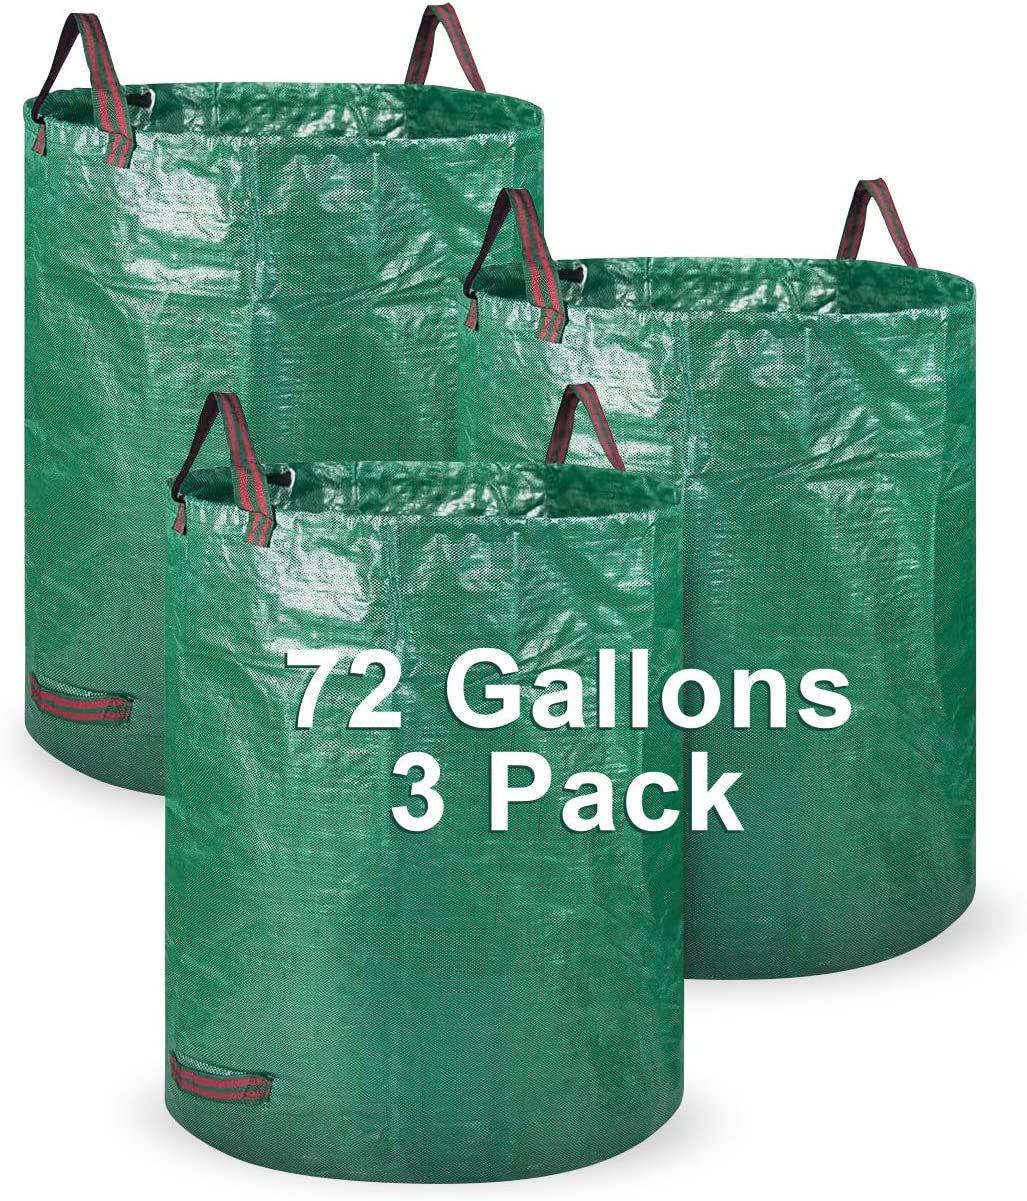 Garden Waste Bag security LAMA 3Pack Excellence Gallons Reusable 72 H Bags